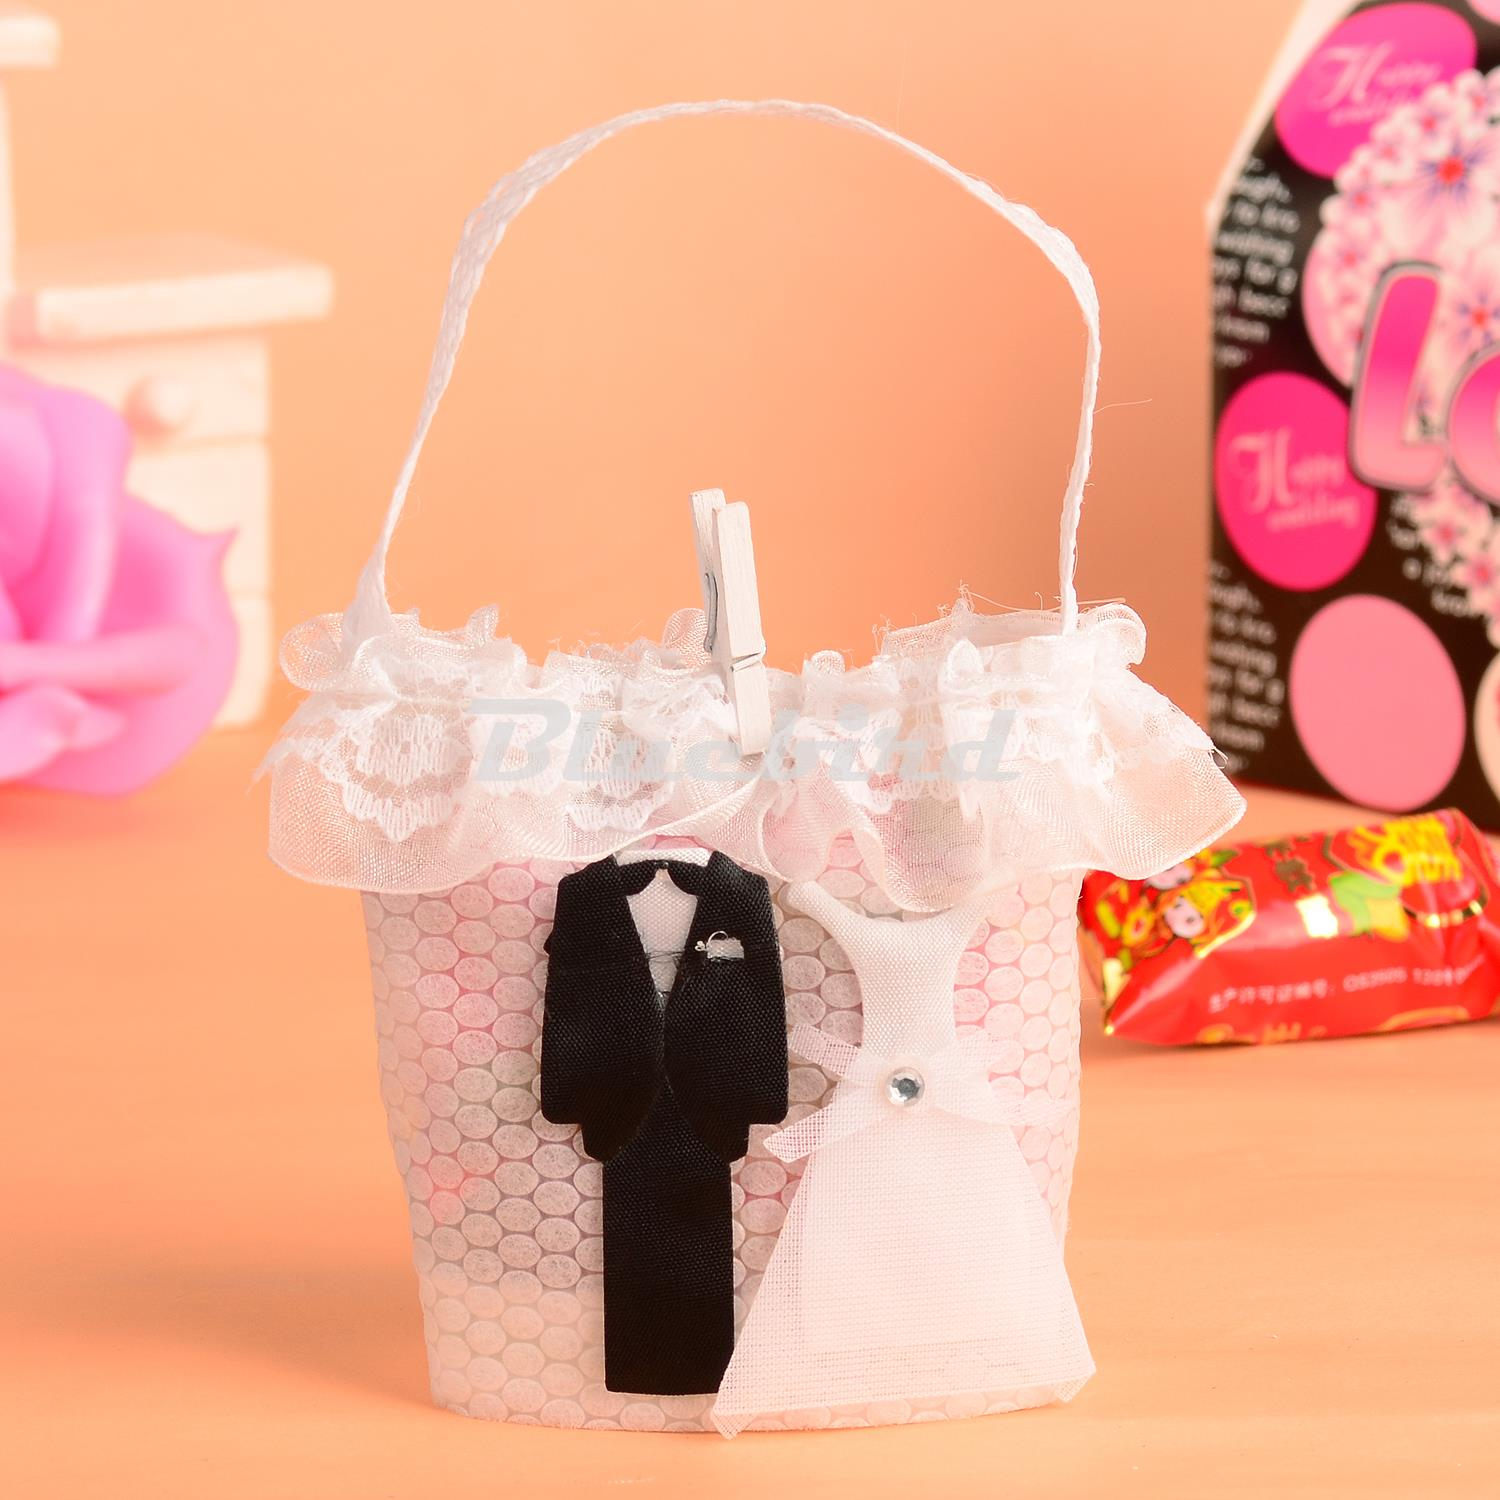 Free Shipping Handbag Shape Non Woven Fabric Bride and Groom Candy Favor Bags Gift Packaging Bags 12pcs(China (Mainland))